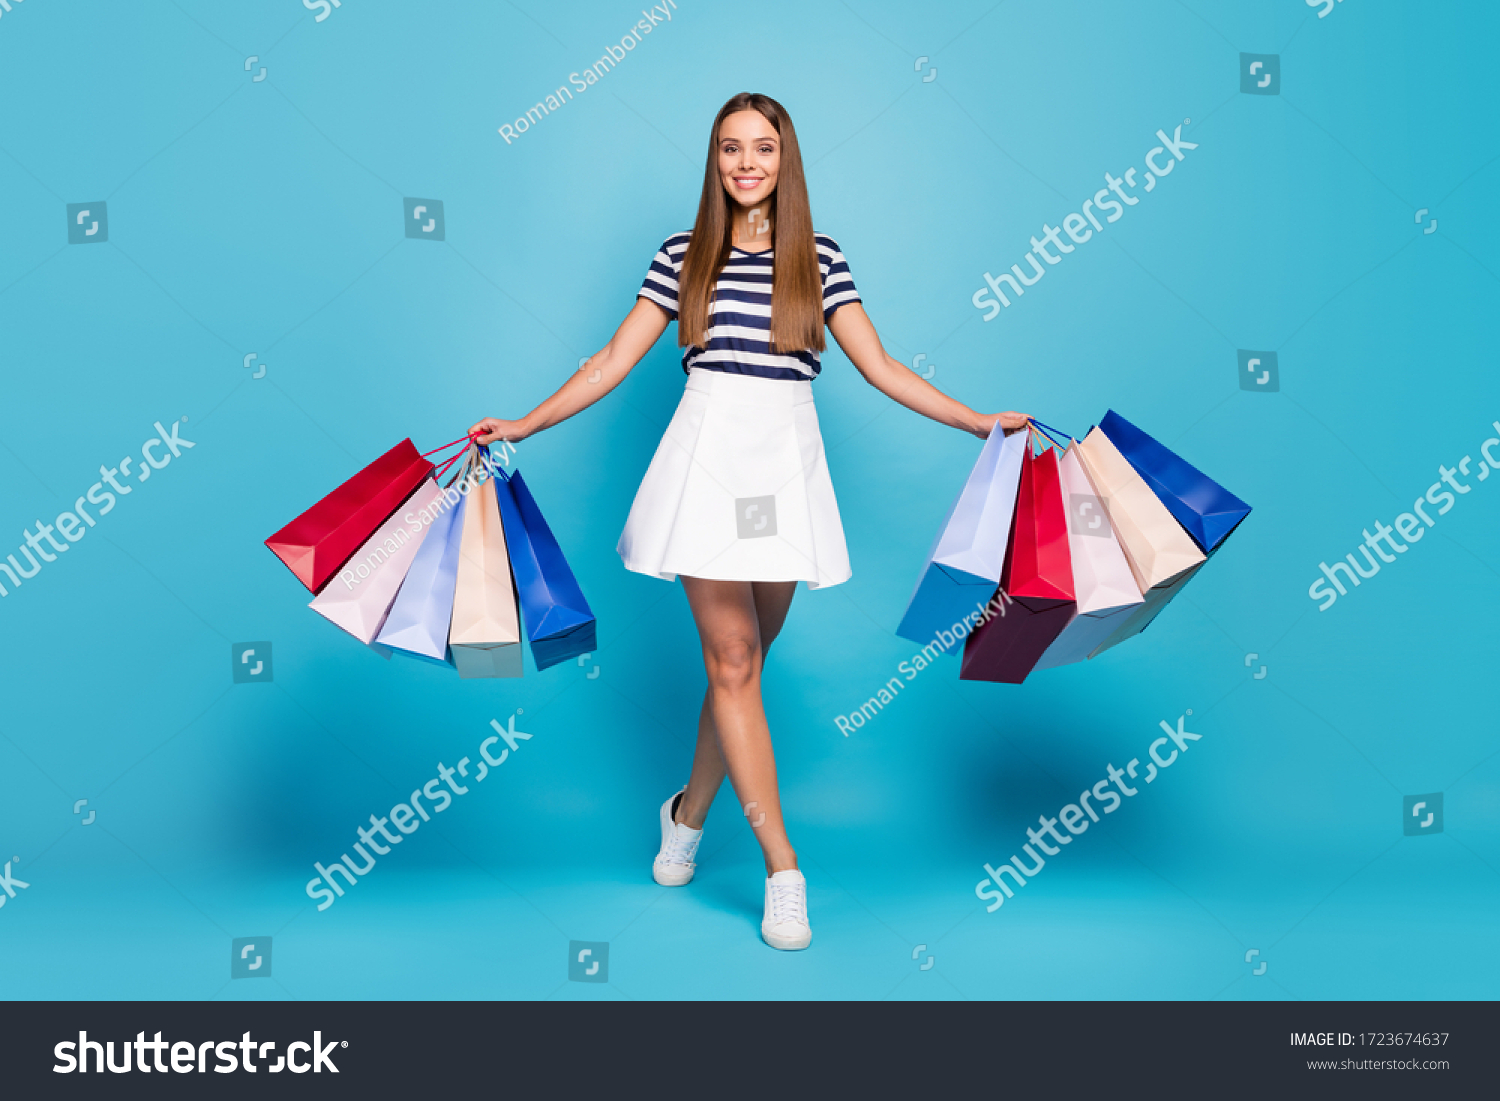 Full body photo of charming funny lady tourist walk shopping center carry many packs good mood best weekend wear white striped t-shirt skirt shoes isolated blue background #1723674637